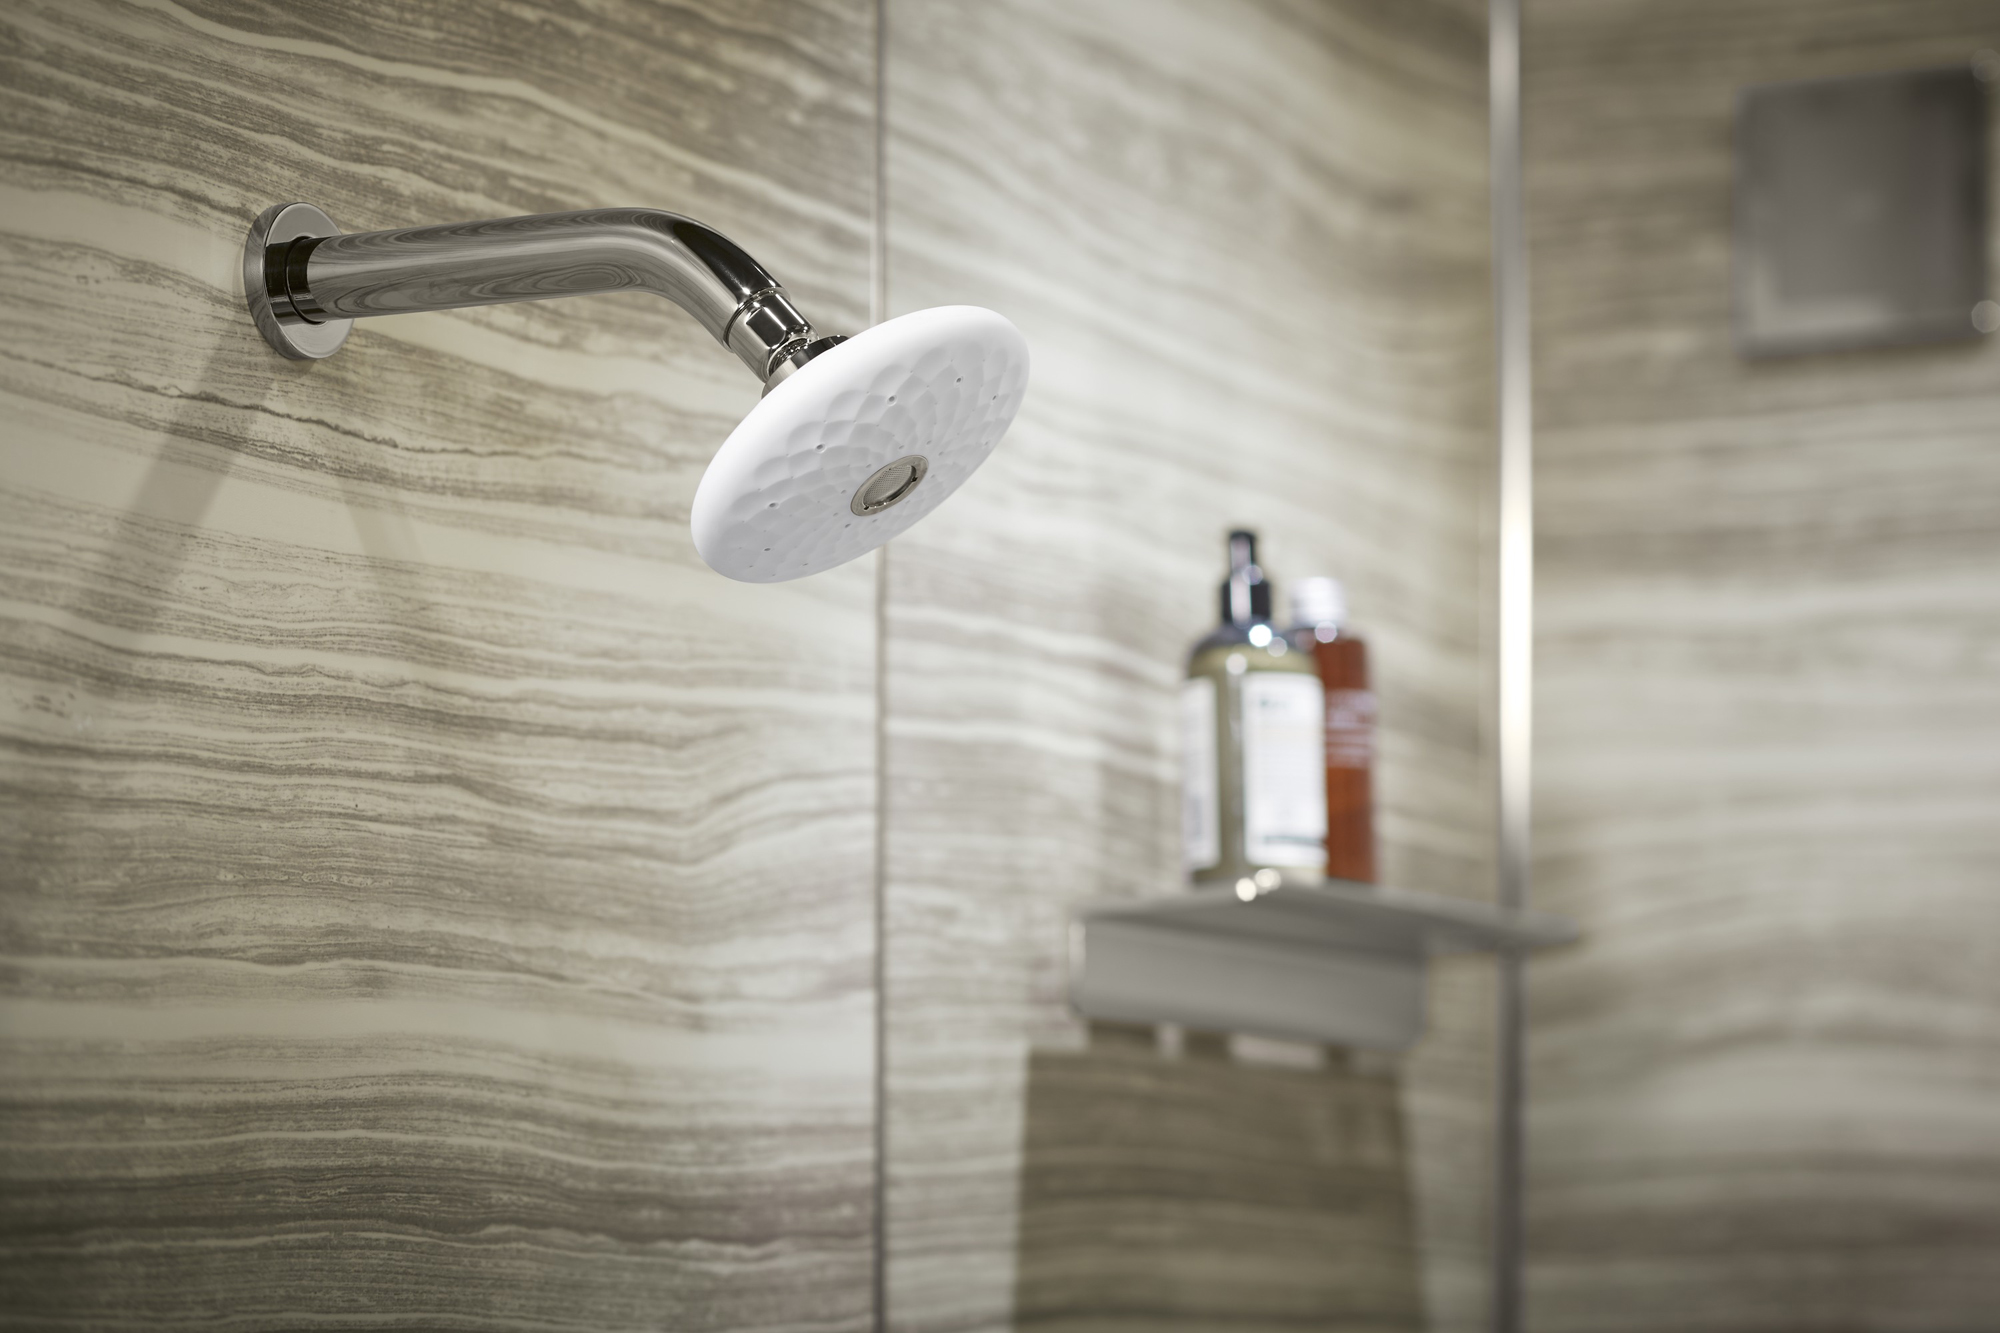 Choreograph® shower walls   Exhale® showerhead     This multi-function showerhead lets you choose from four experiences: full coverage, drenching rain, pulsating massage, and silk.